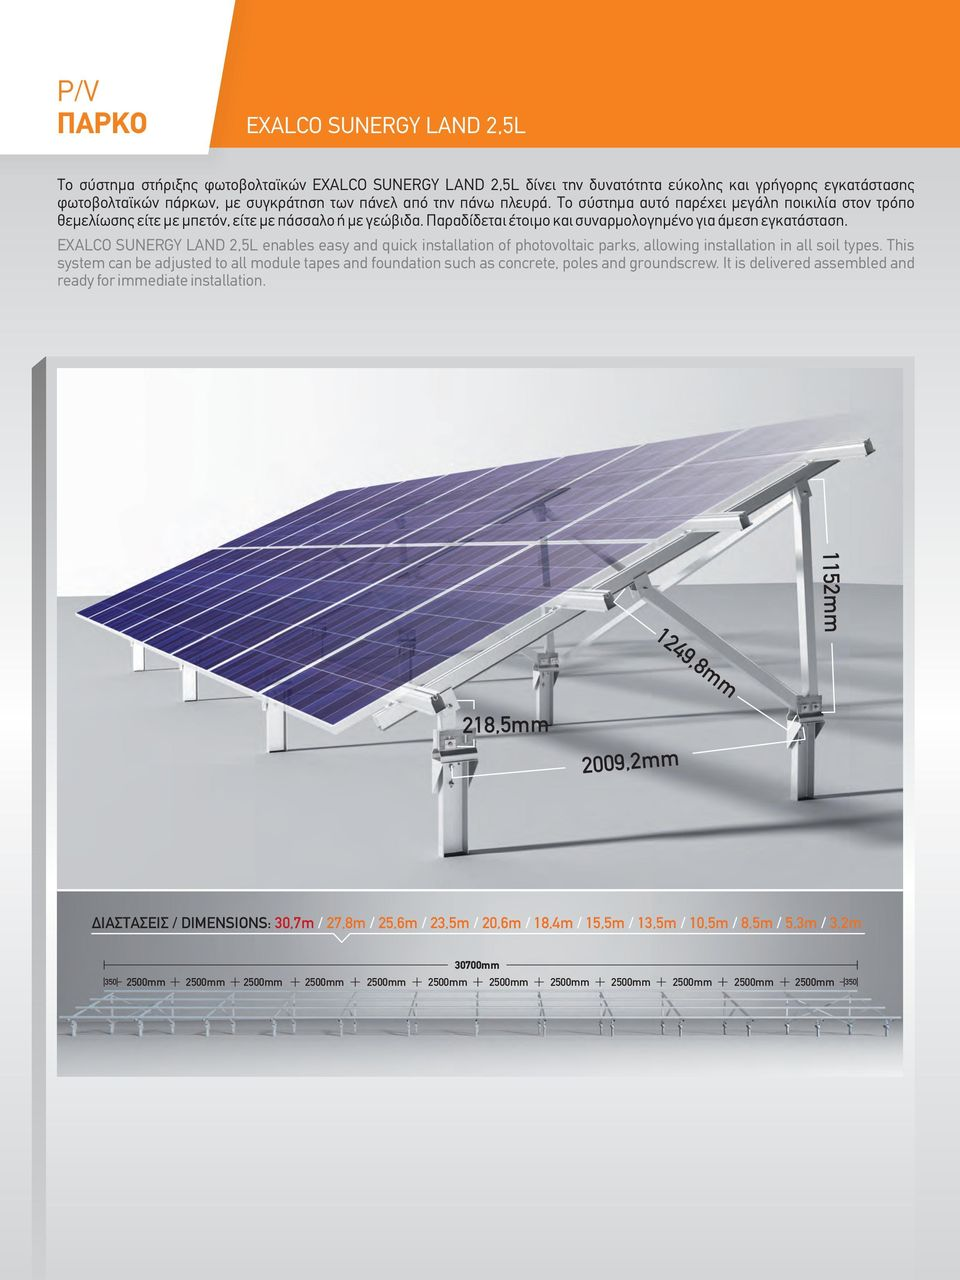 EXALCO SUNERGY LAND 2,5L enables easy and quick installation of photovoltaic parks, allowing installation in all soil types.